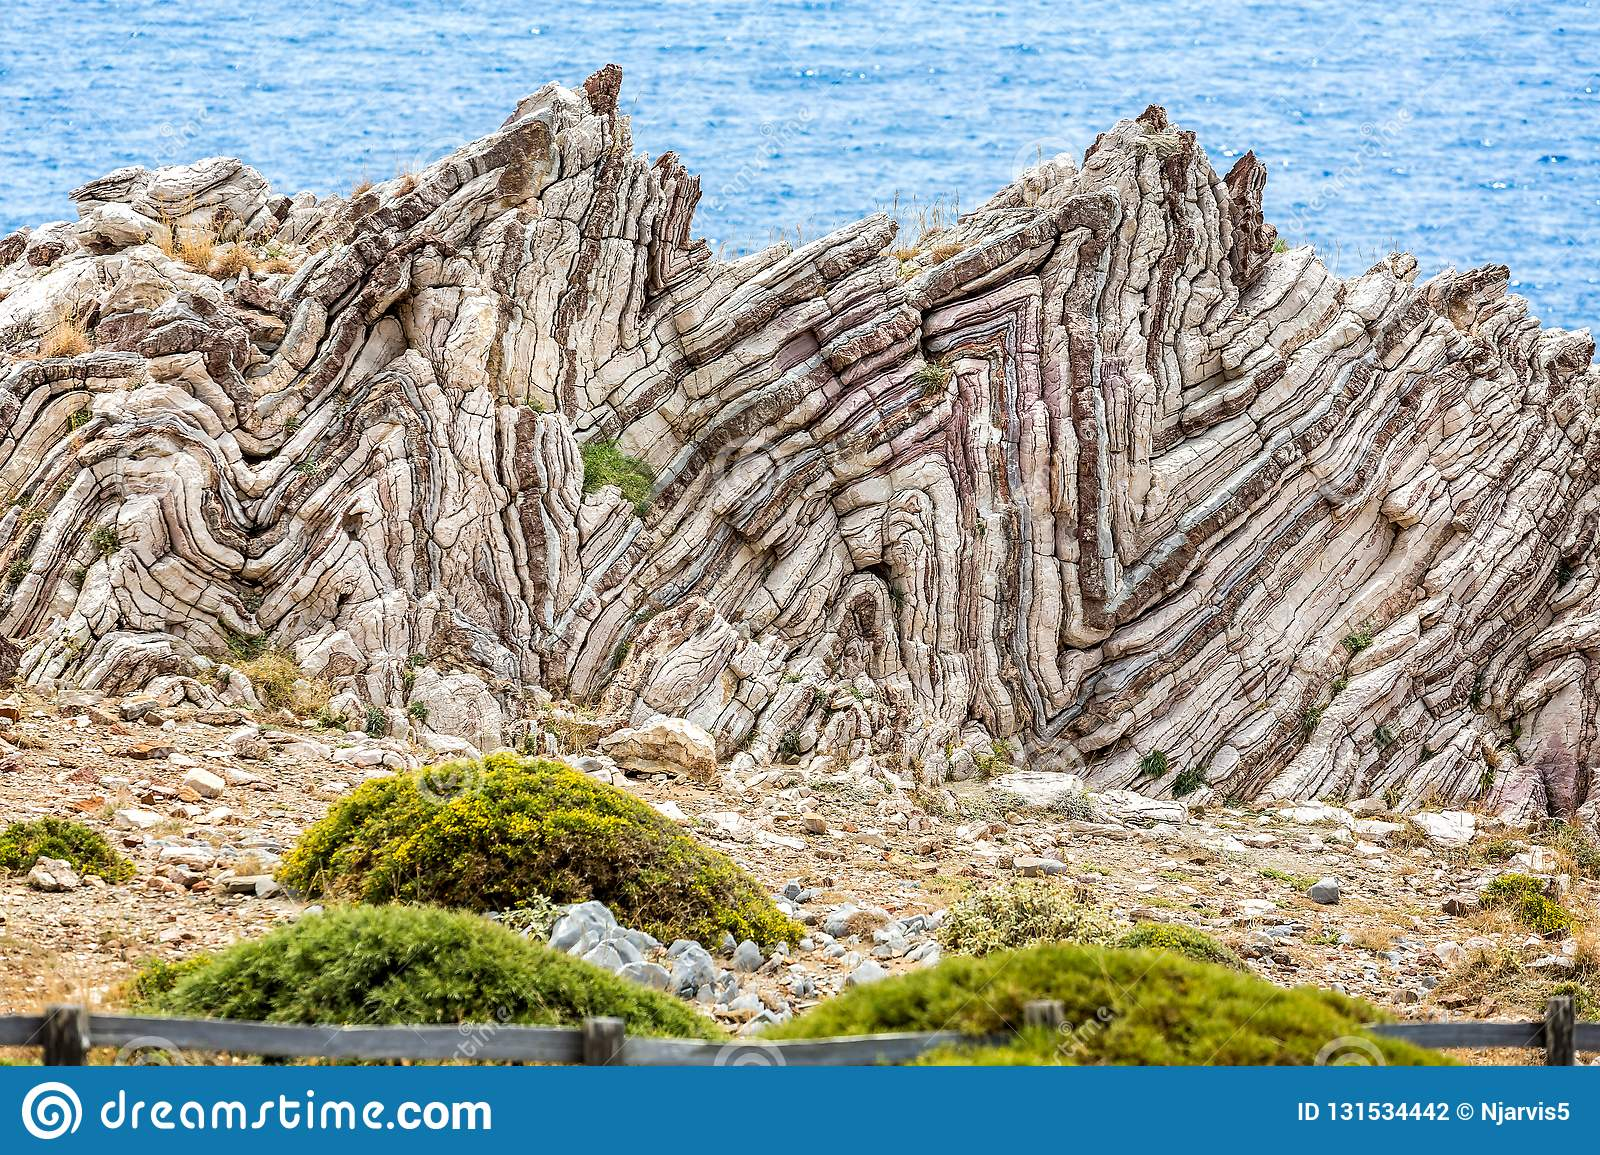 Extreme geological folds , anticlines and synclines, in Crete, Greece